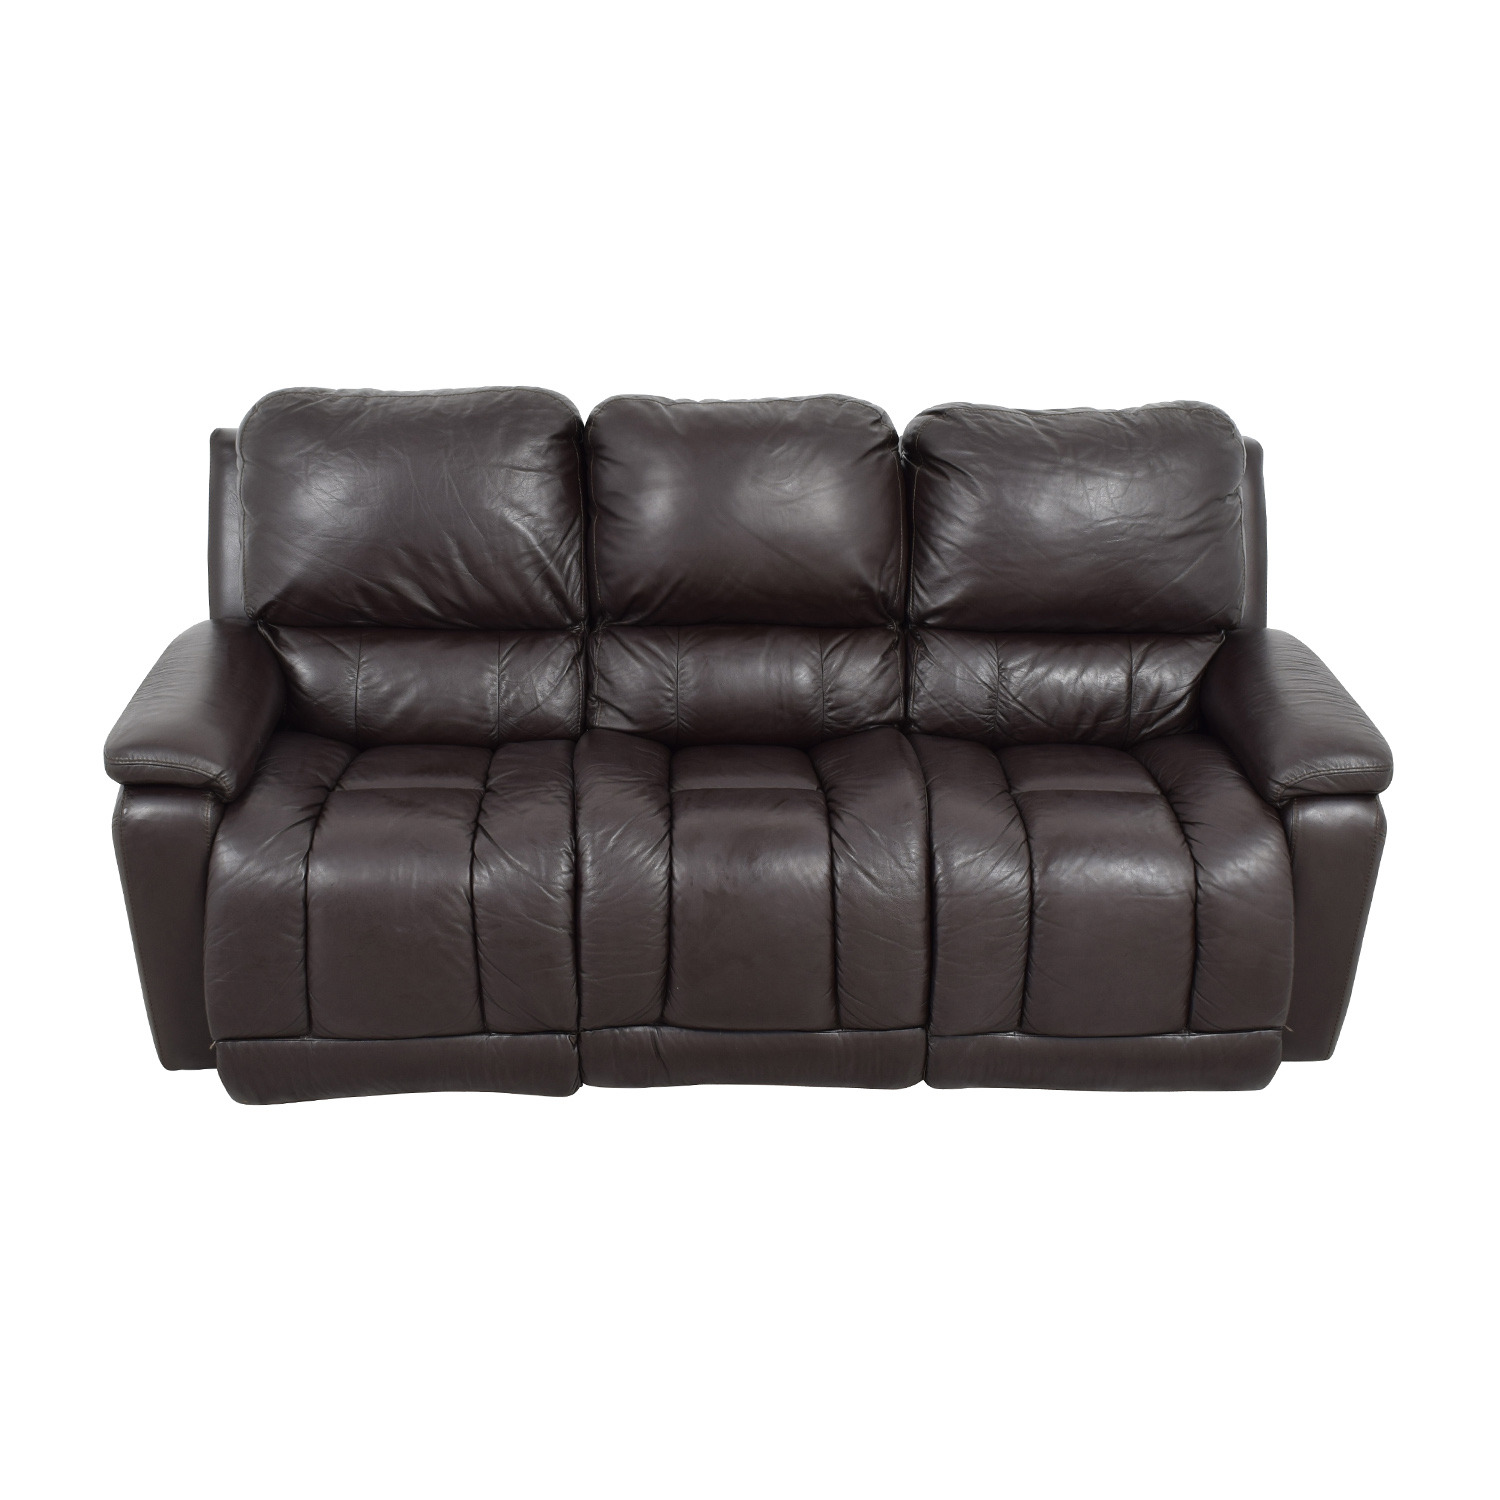 Used Reclining Sofa 80 Off Kathy Ireland Home By Raymour And Flanigan Thesofa